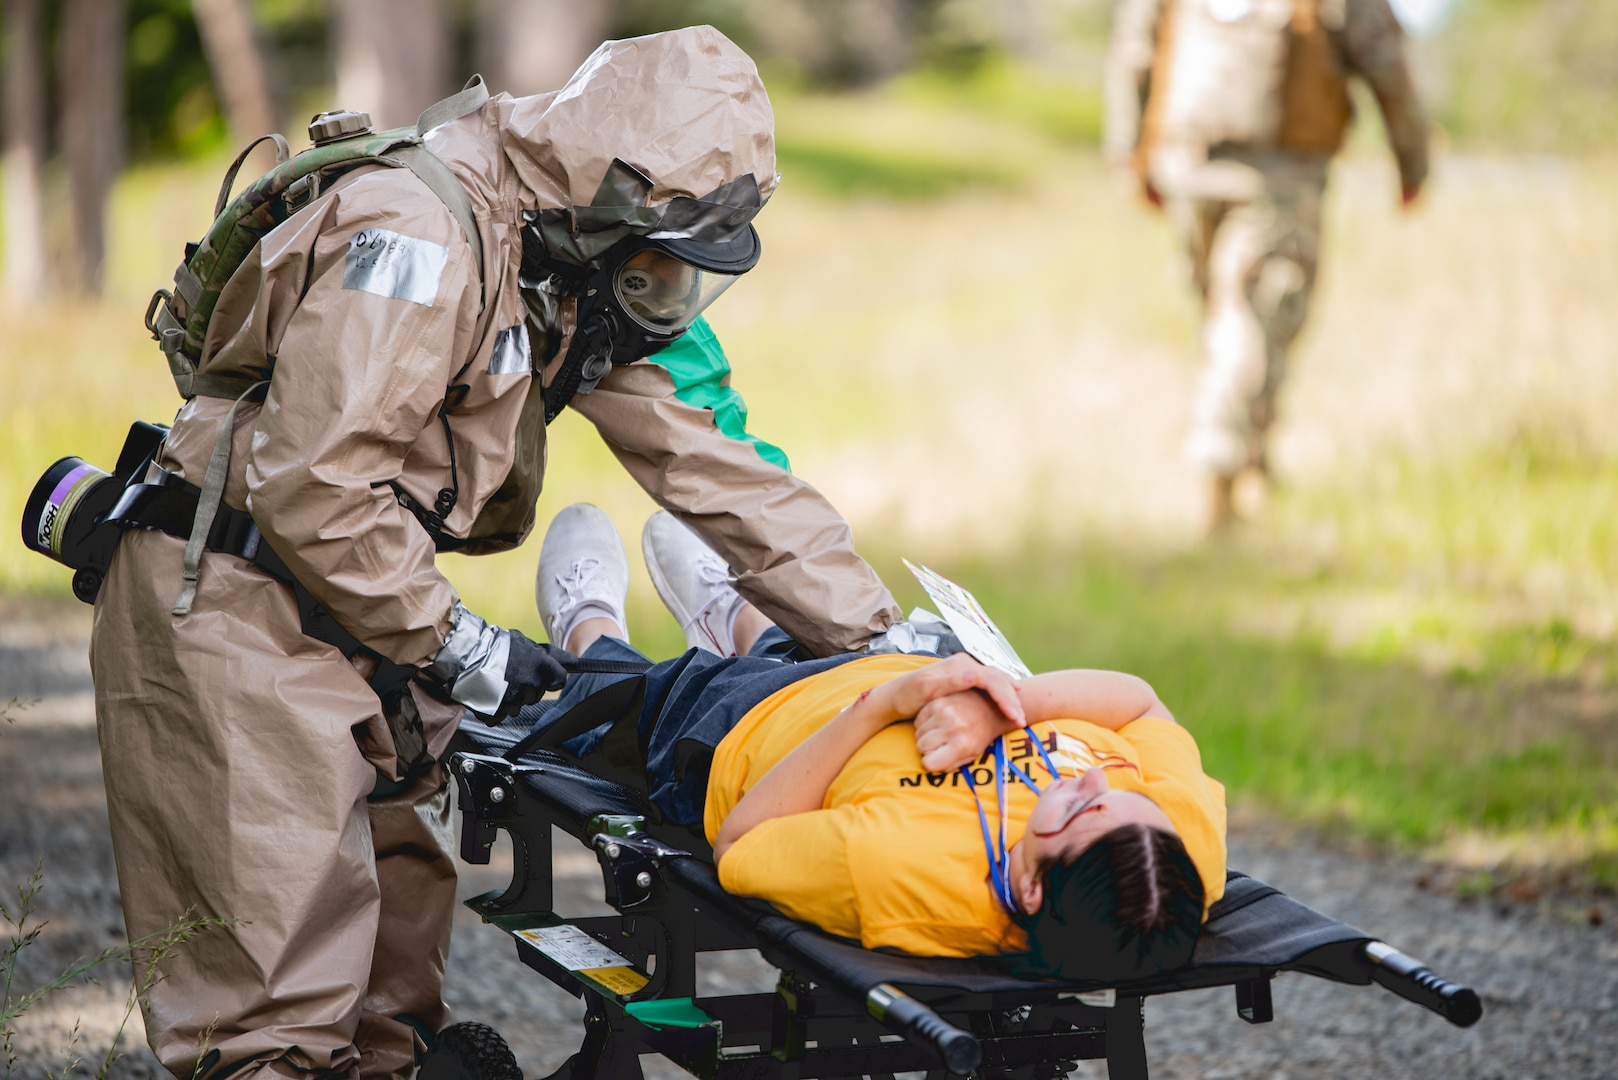 Guardsmen from the Oregon Chemical, Biological, Radiological, Nuclear and Explosive (CBRNE) Enhanced Response Force Package (CERFP) conduct mass casualty decontamination operations in an emergency preparedness exercise at Camp Rilea. It was part of an inspection conducted by the Joint Interagency Training and Education Center every two years to measure the team's ability to respond to a disaster.